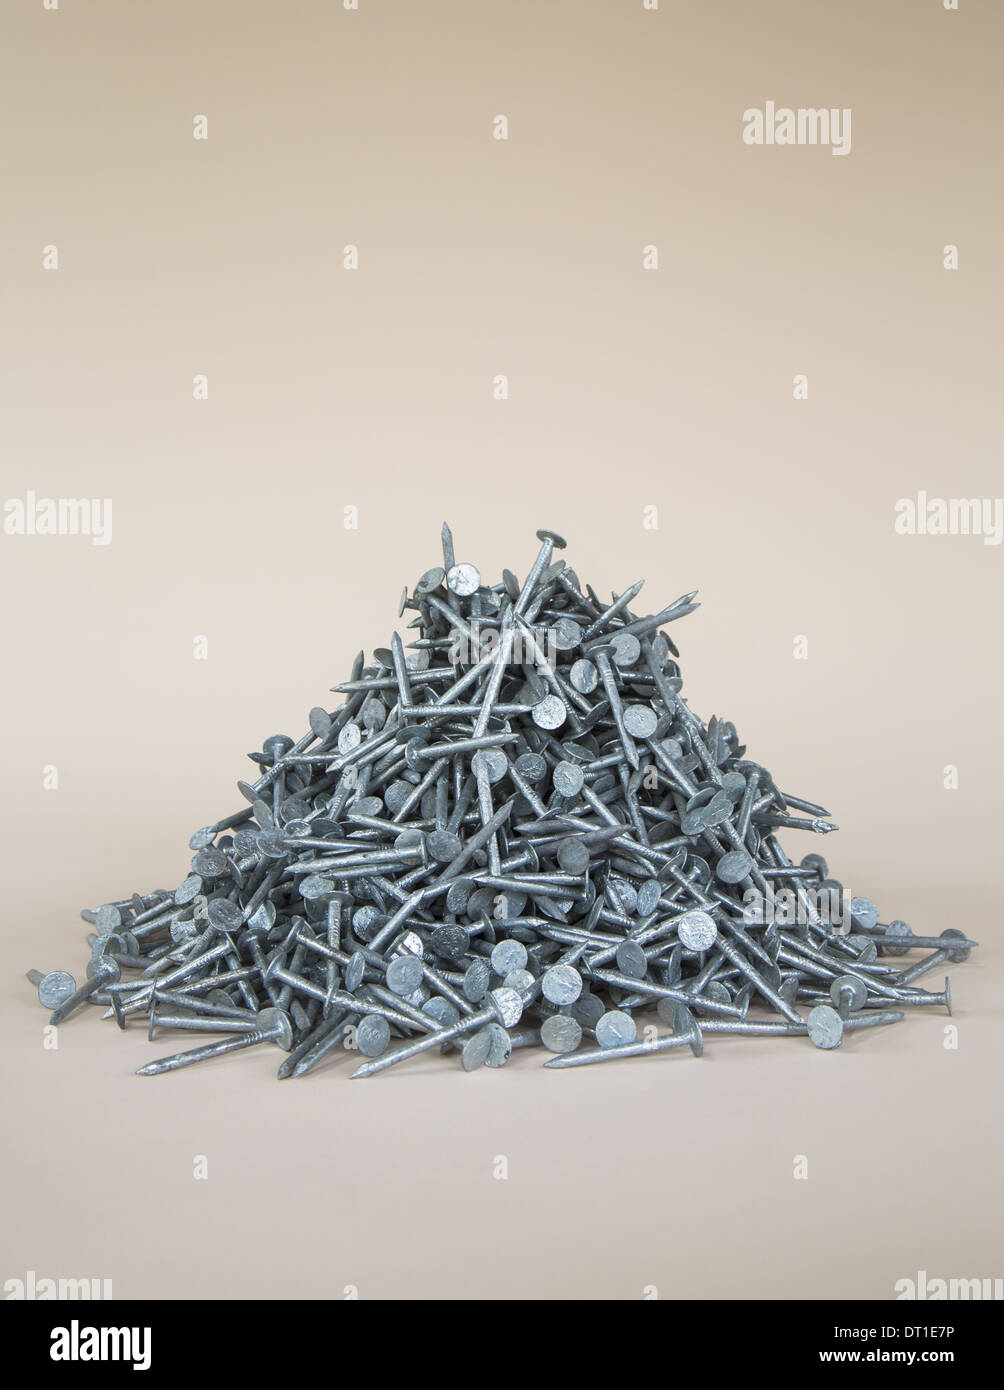 heaped pile of galvanized nails Stock Photo